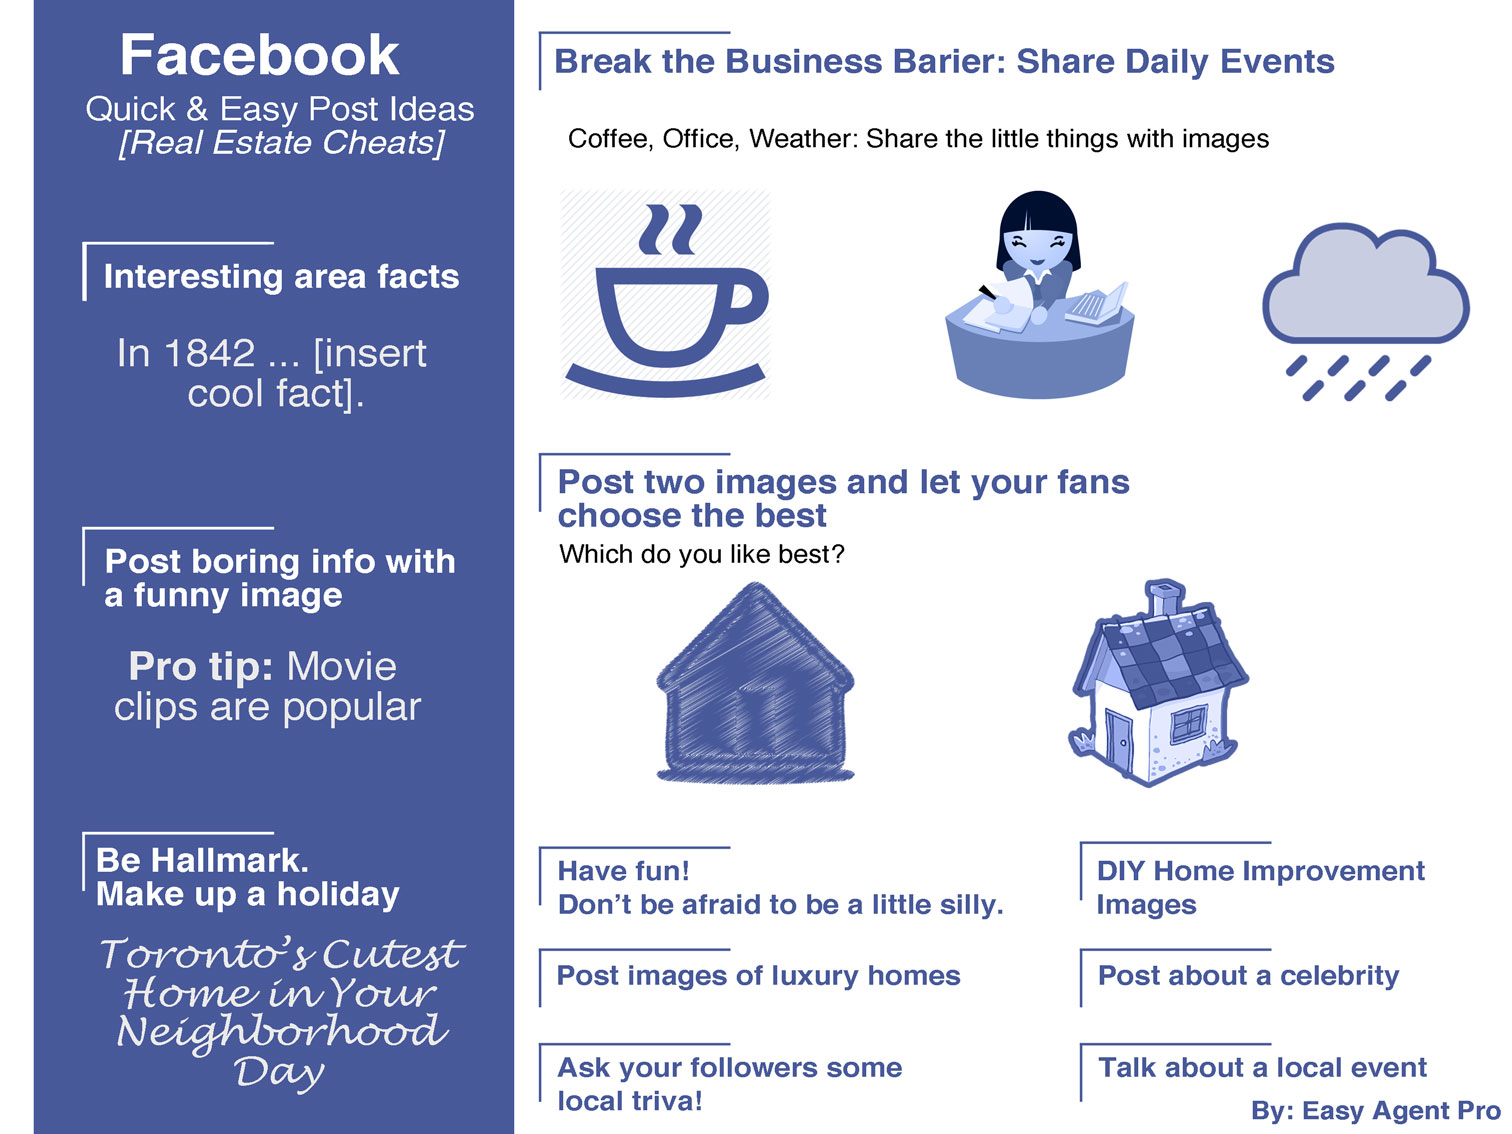 10 Tips for Real Estate Agents looking to have better Facebook posts on their social media page